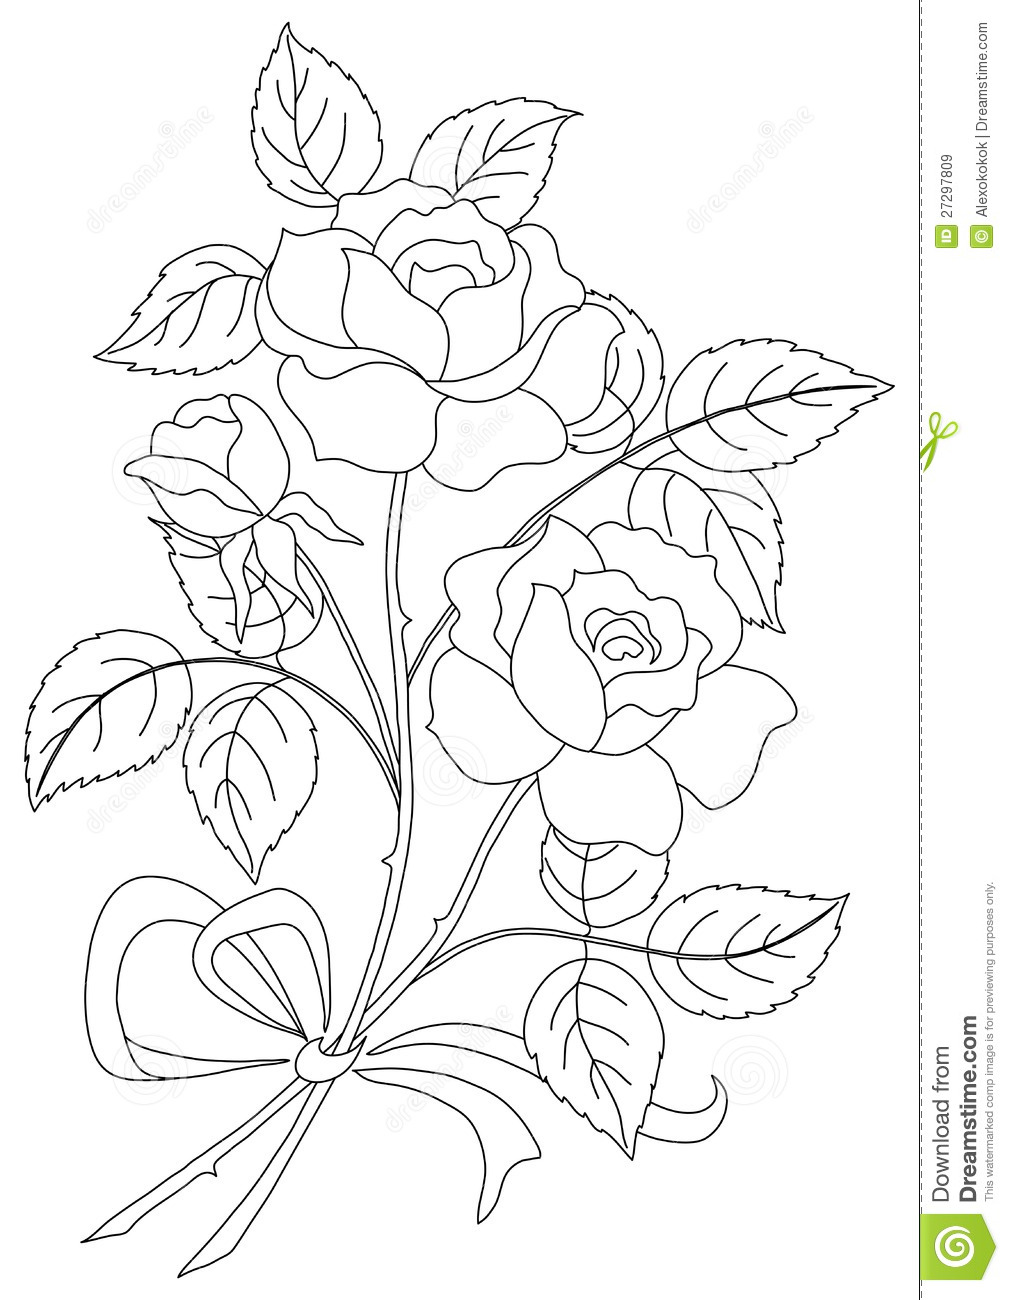 Flower coloring pages for adults roses